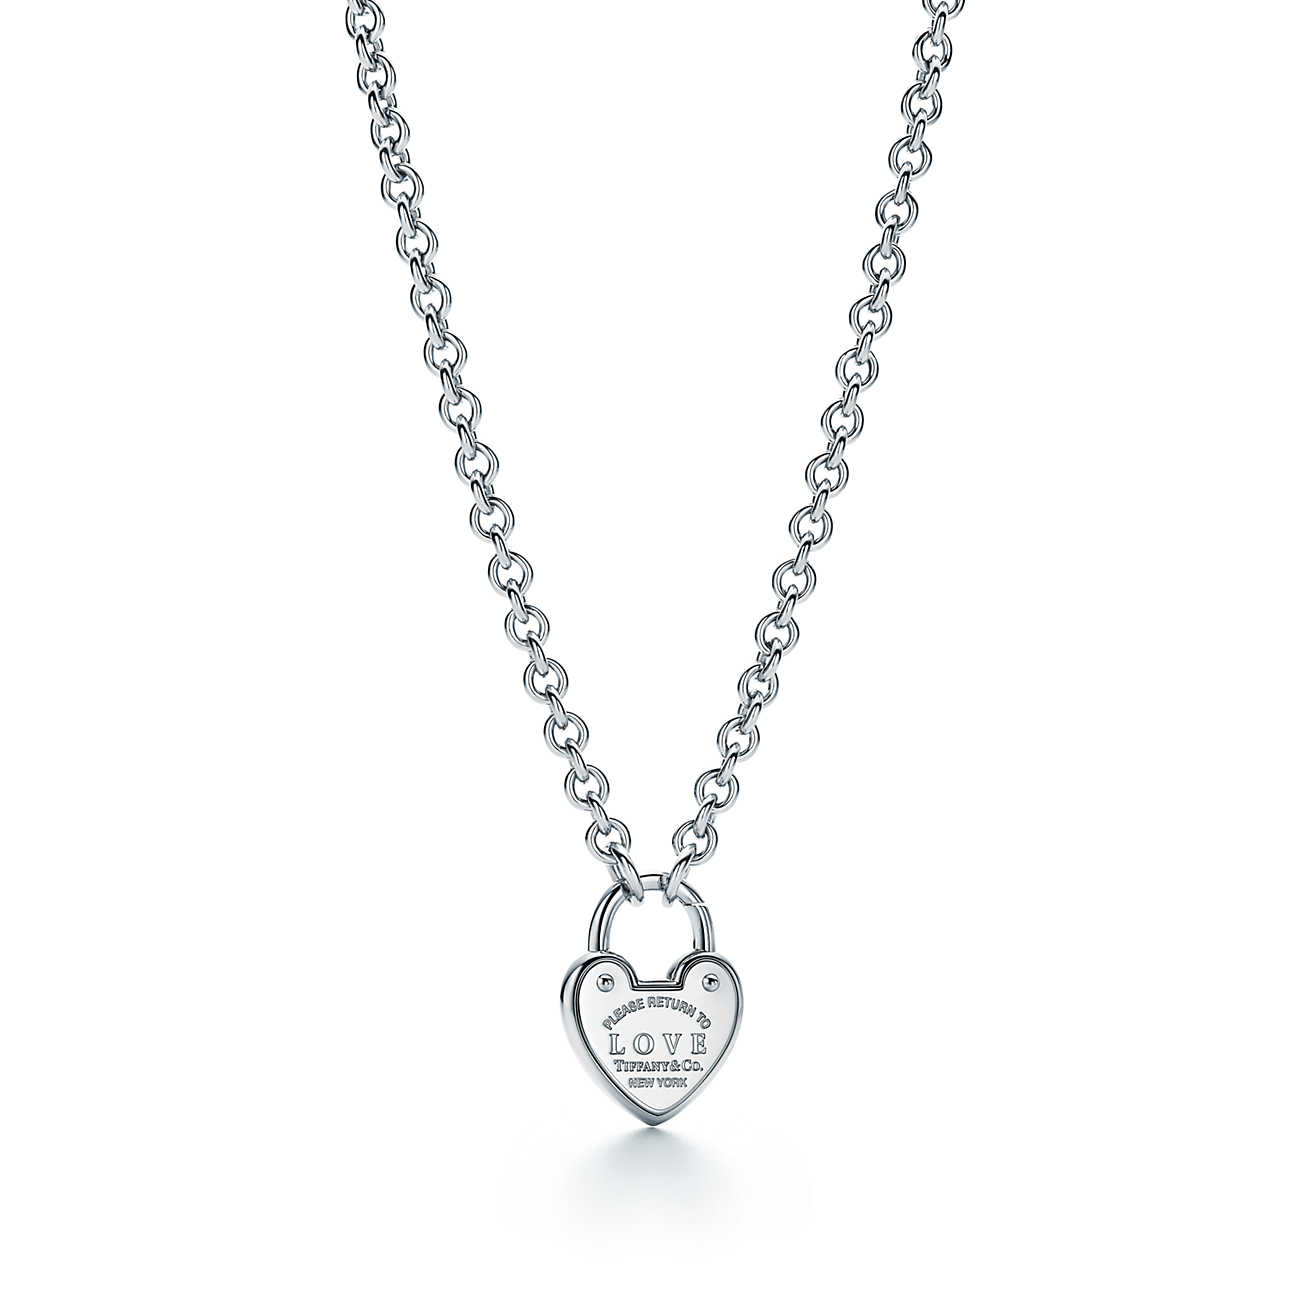 Return to Tiffany® Love lock necklace in sterling silver. | Tiffany & Co.